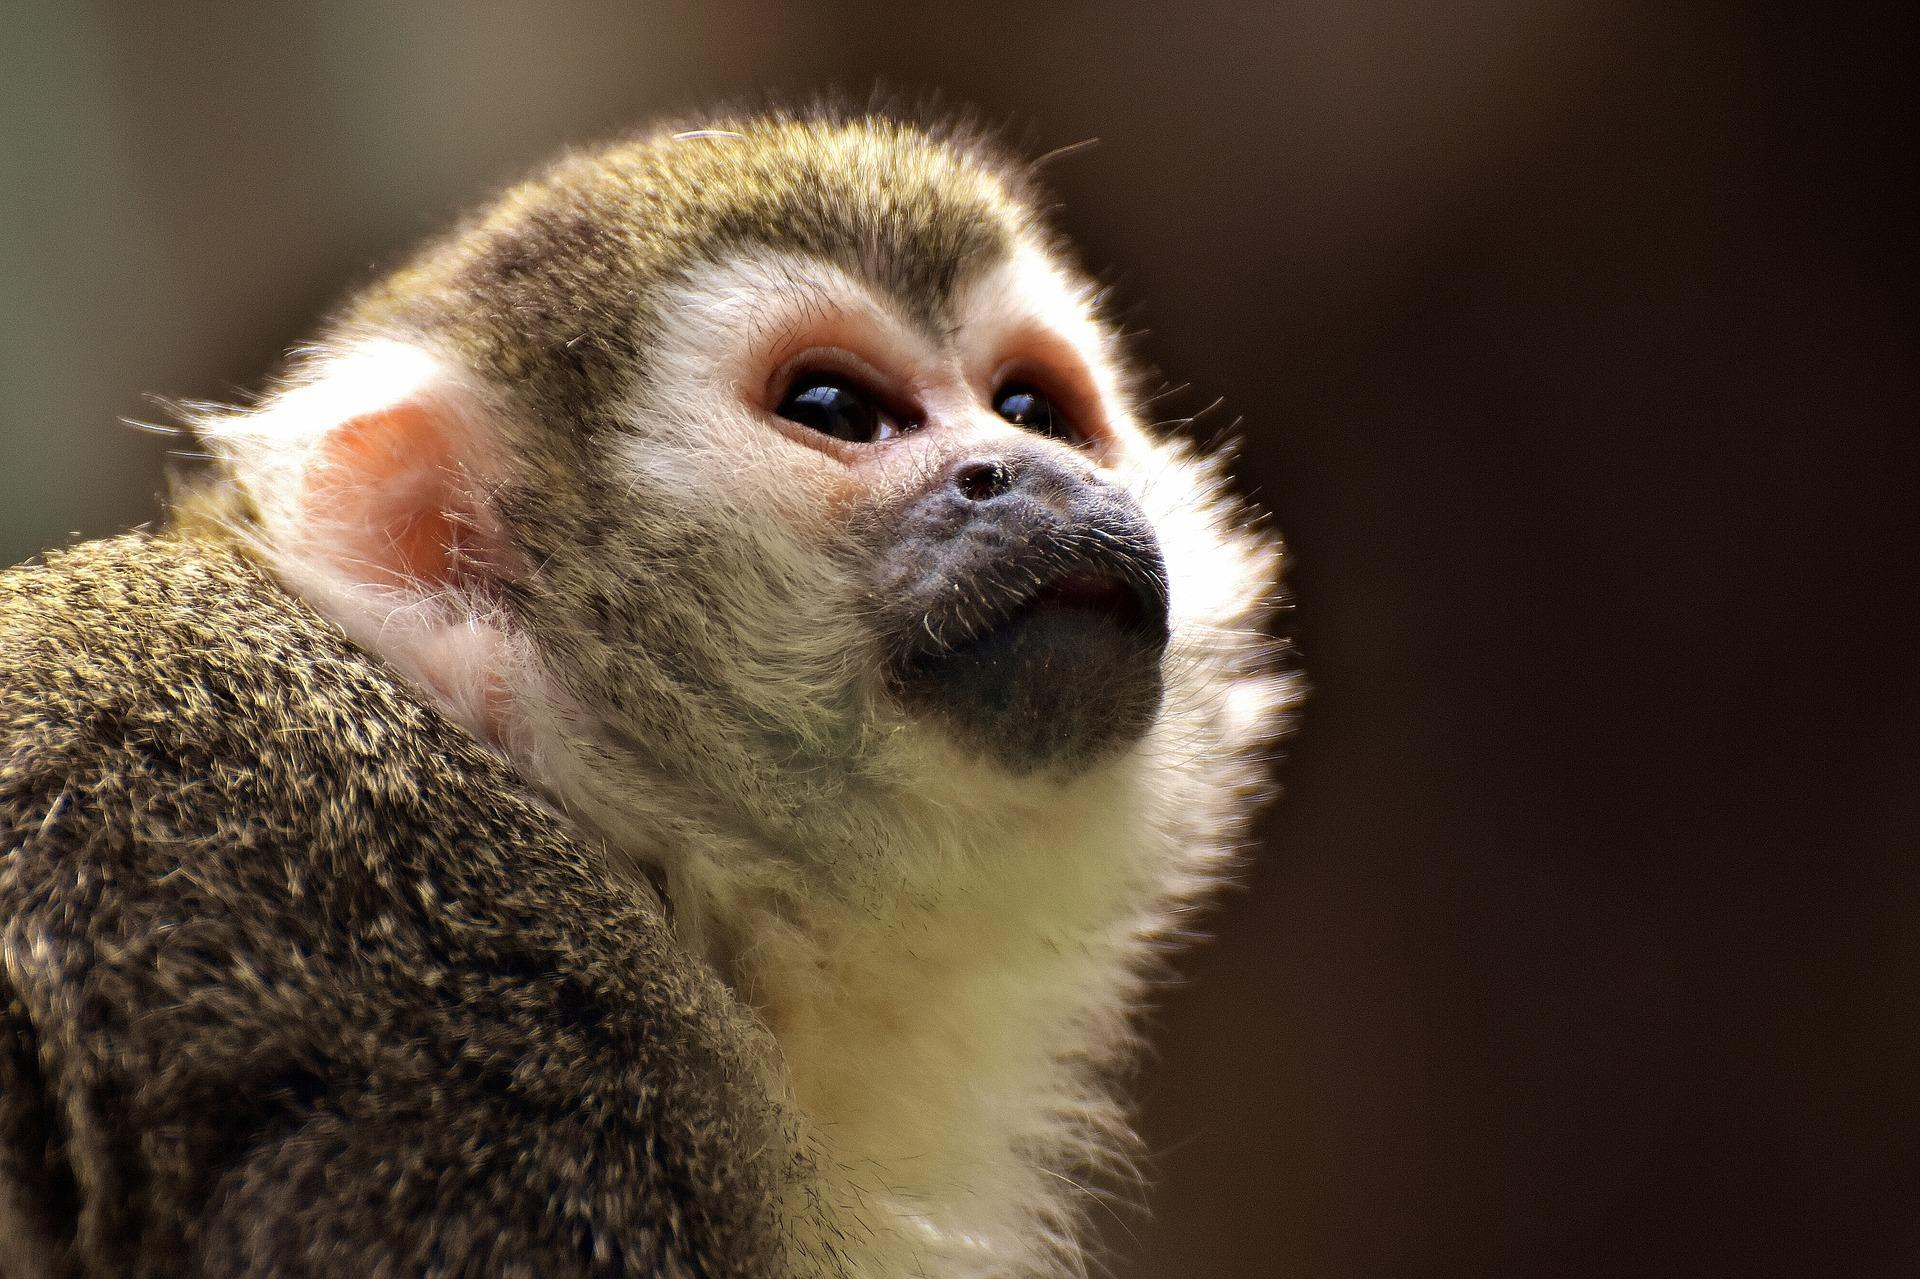 Capuchin Monkey Wallpaper Hd For Android Apk Download